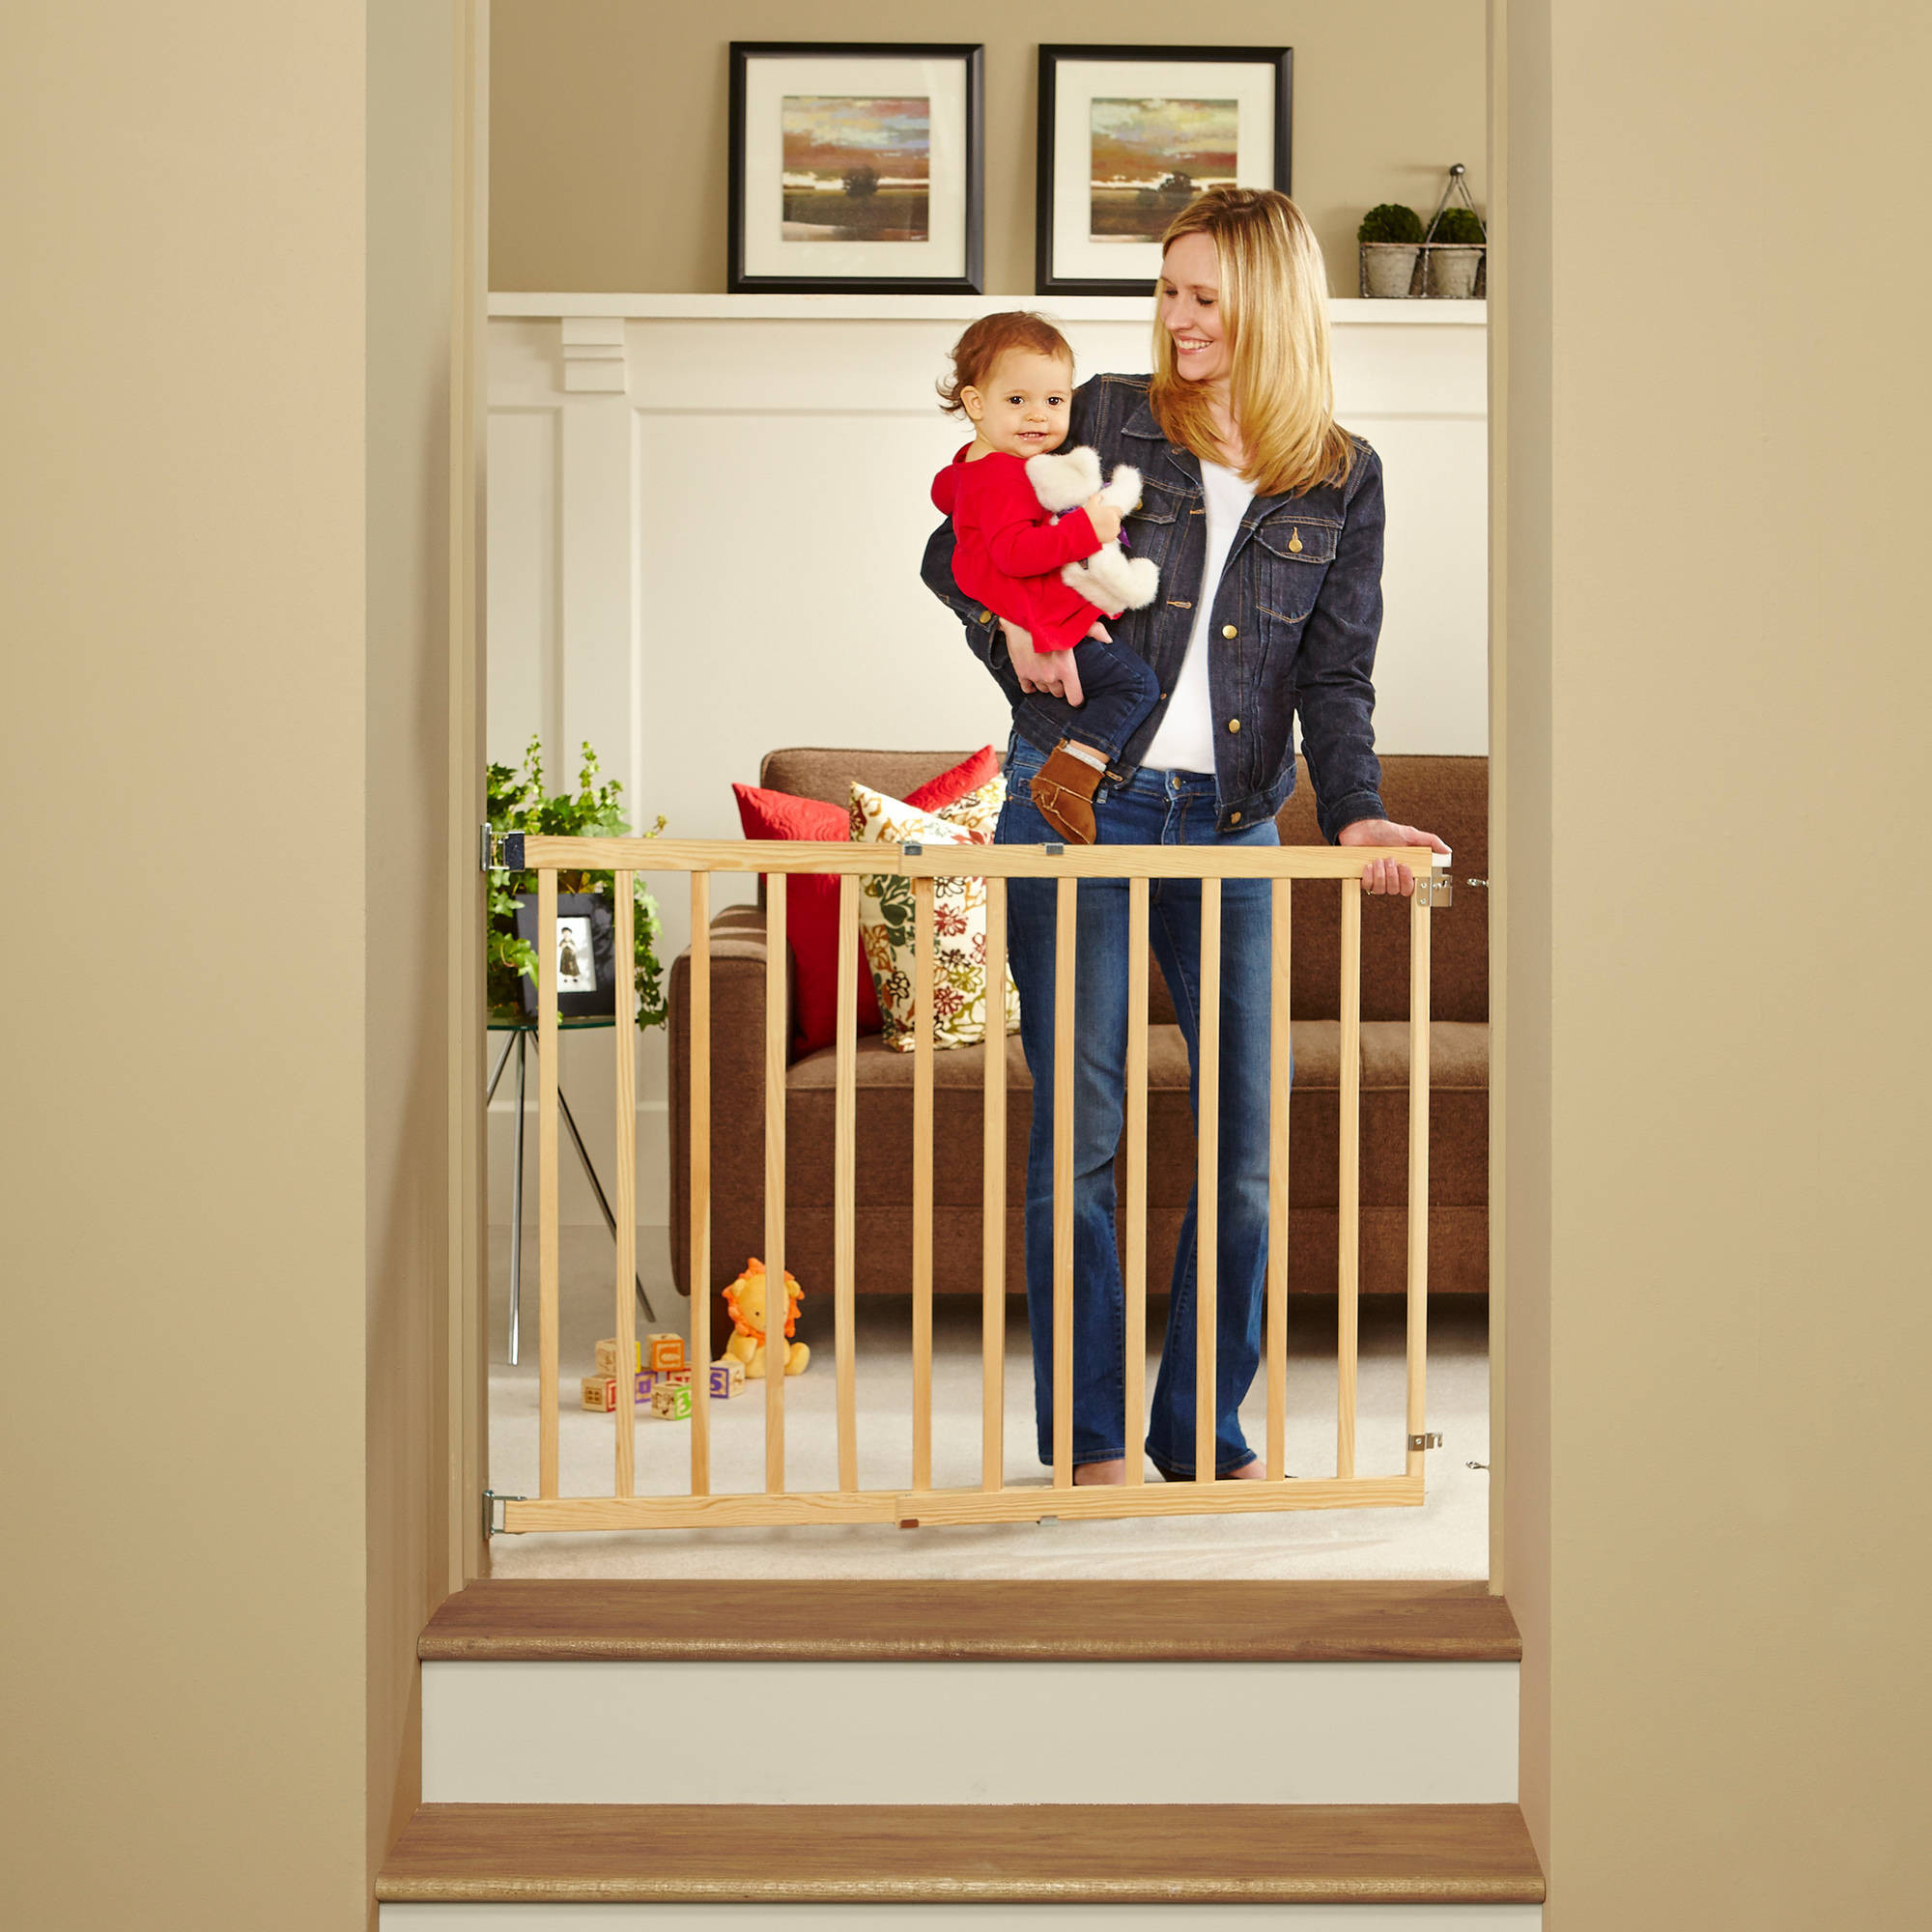 Best ideas about Baby Gate For Top Of Stairs . Save or Pin North States Tall Stairway Swing Gate Top of Stairs Baby Now.